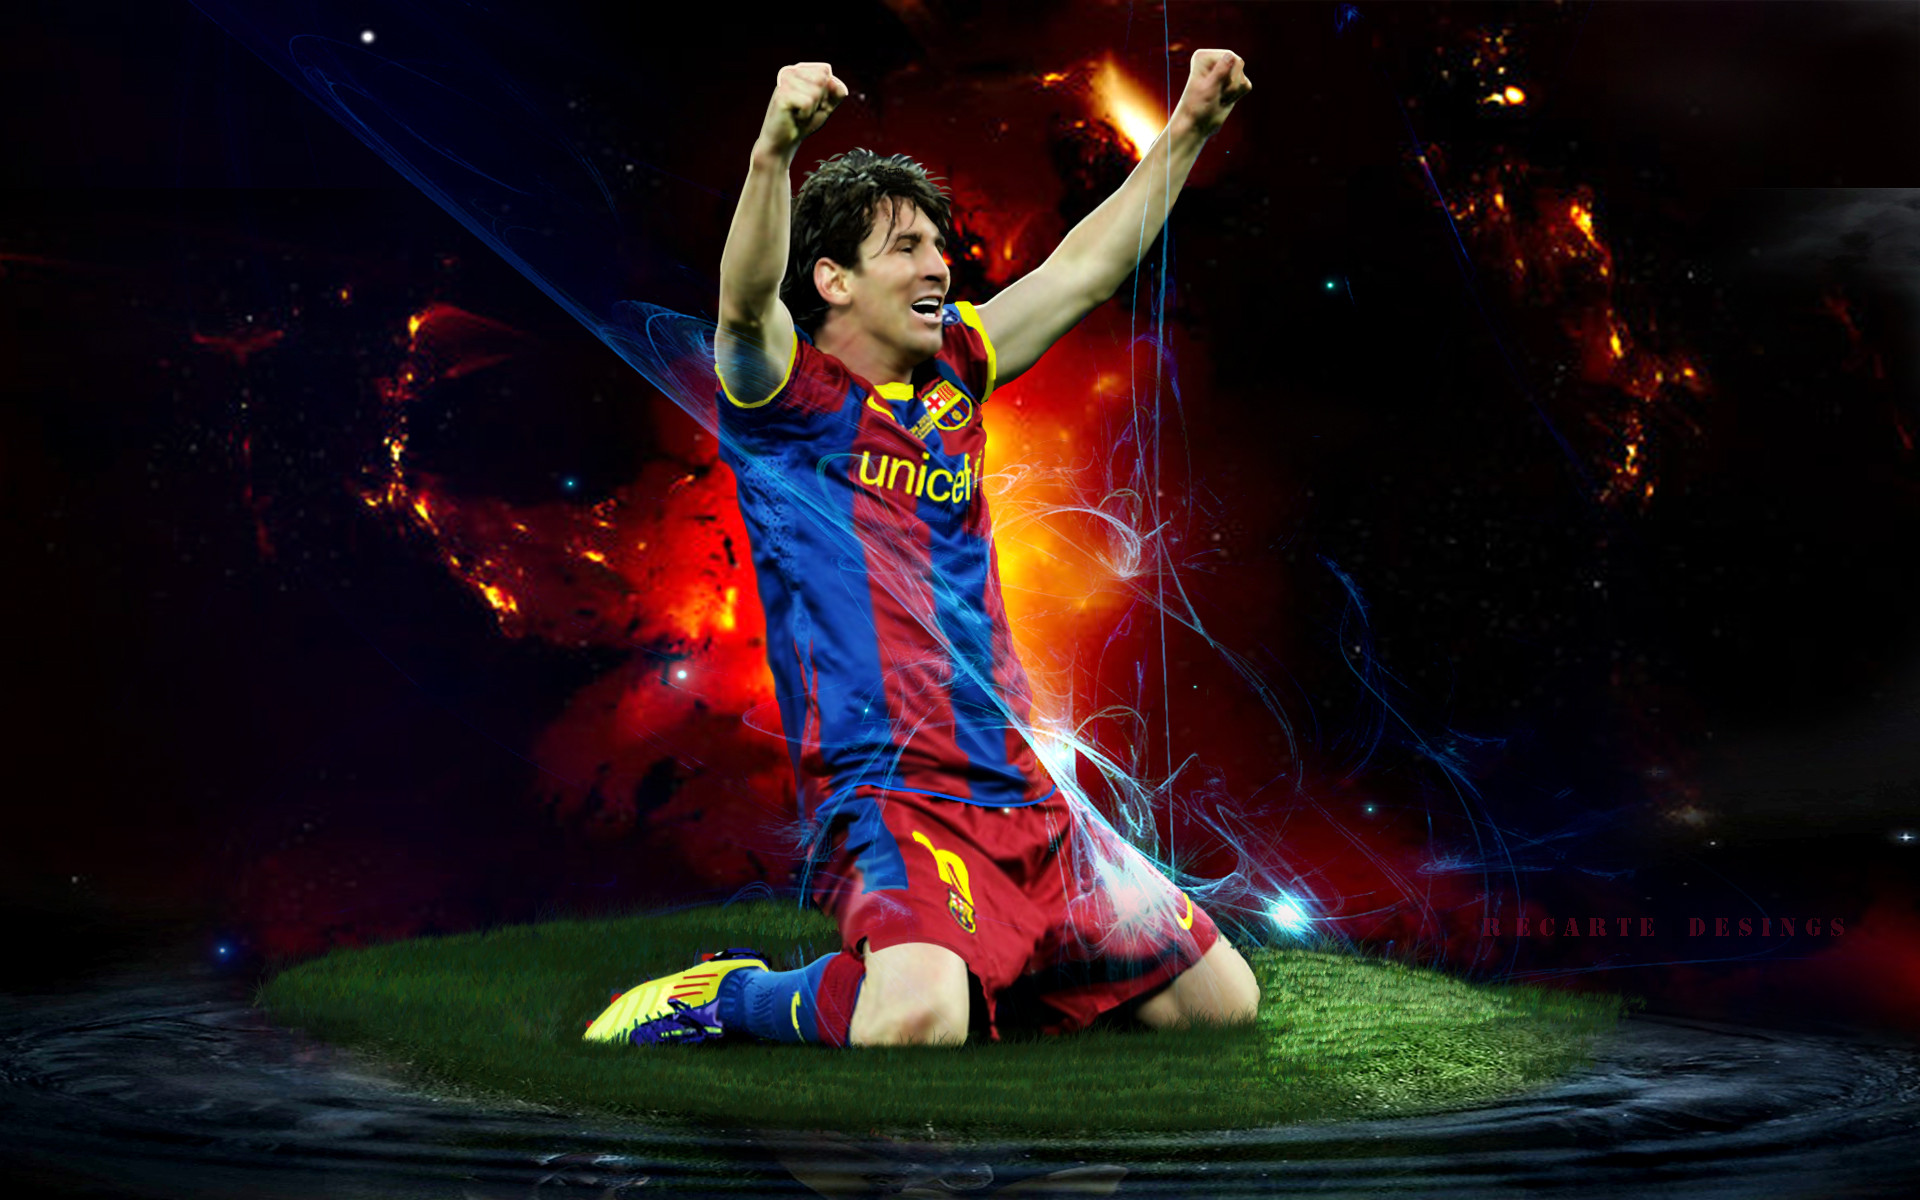 Lionel Messi 2015 Wallpapers HD 1080p 1920x1200